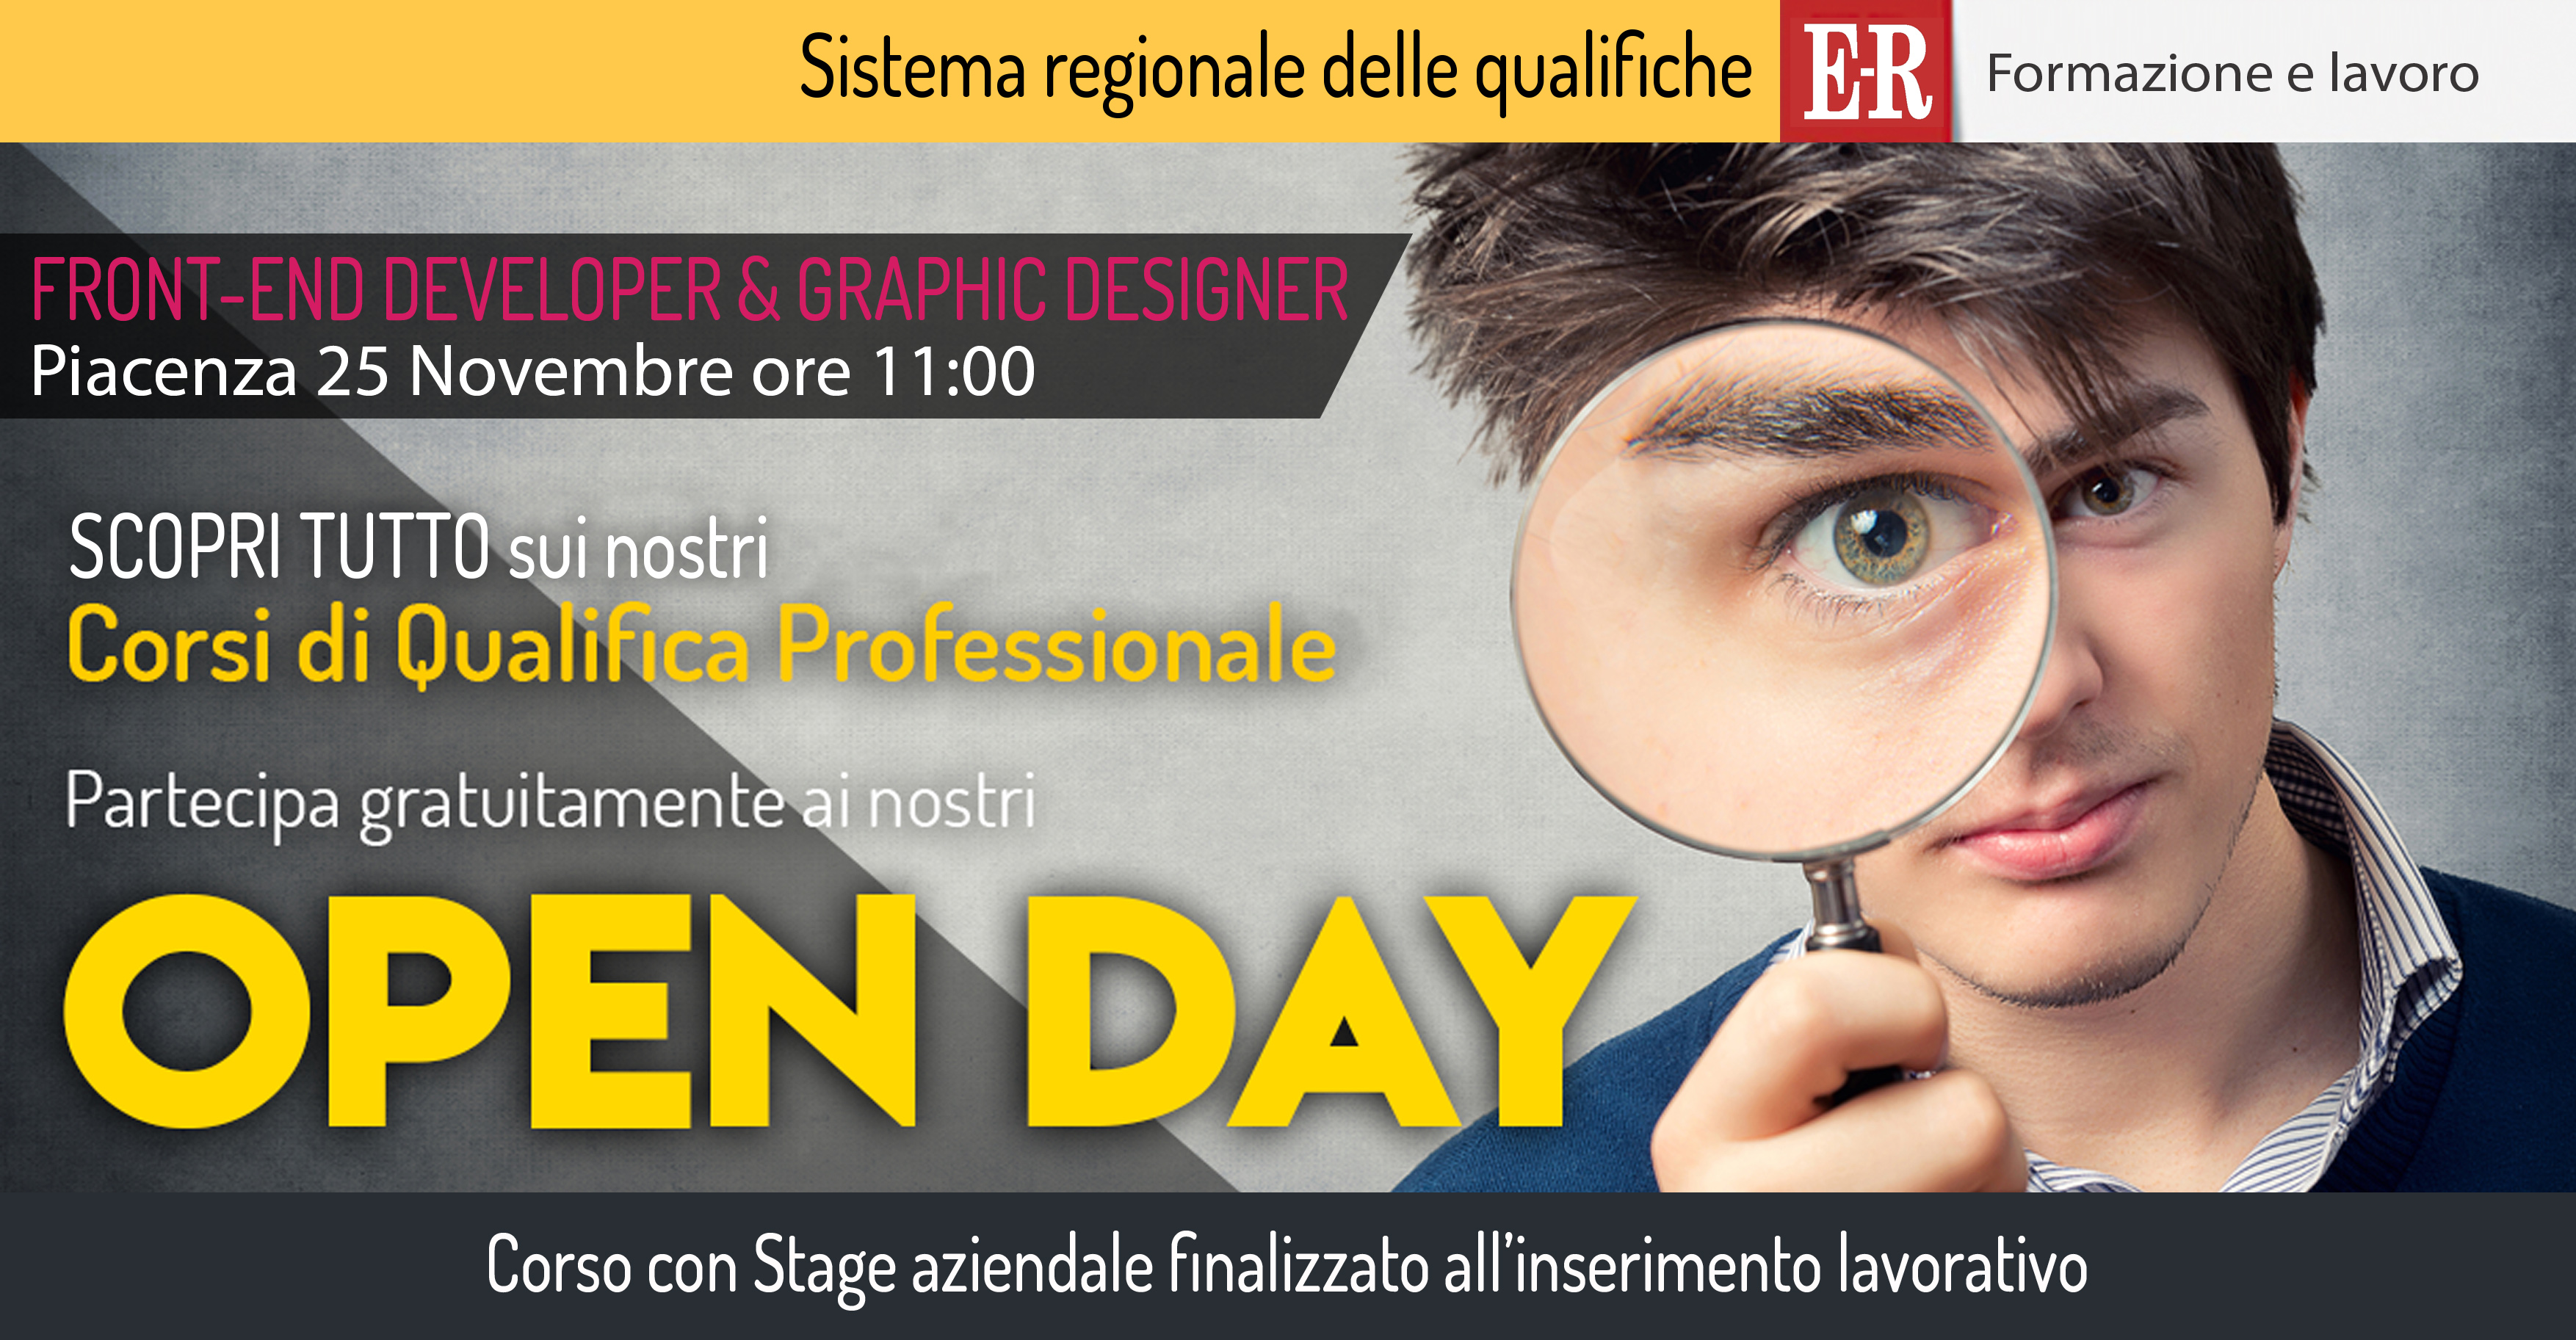 Open Day FRONT-END DEVELOPER & GRAPHIC DESIGNER